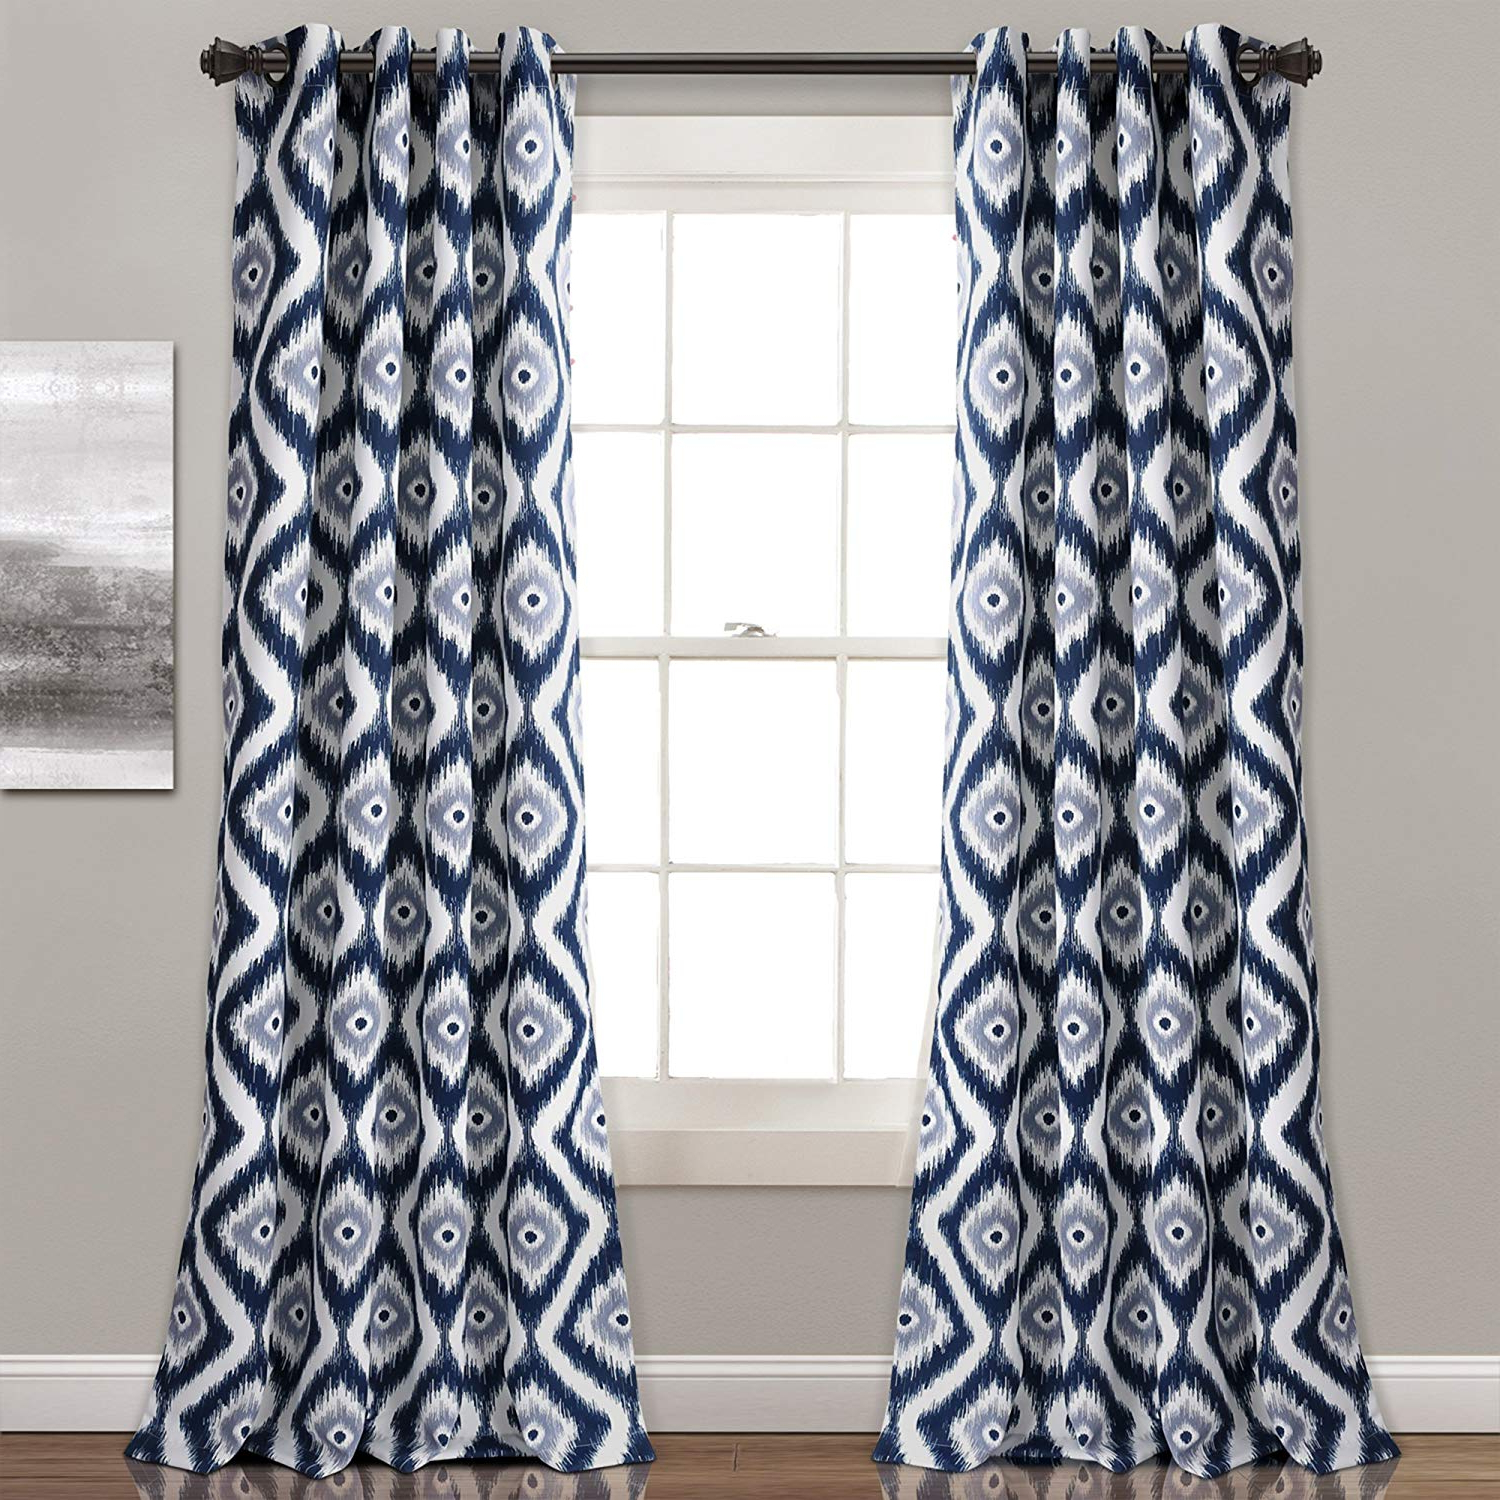 Best And Newest Lush Decor Lush Décor Diamond Ikat Room Darkening Window Curtain Panel Pair, 0, Navy For Ikat Blue Printed Cotton Curtain Panels (View 11 of 20)